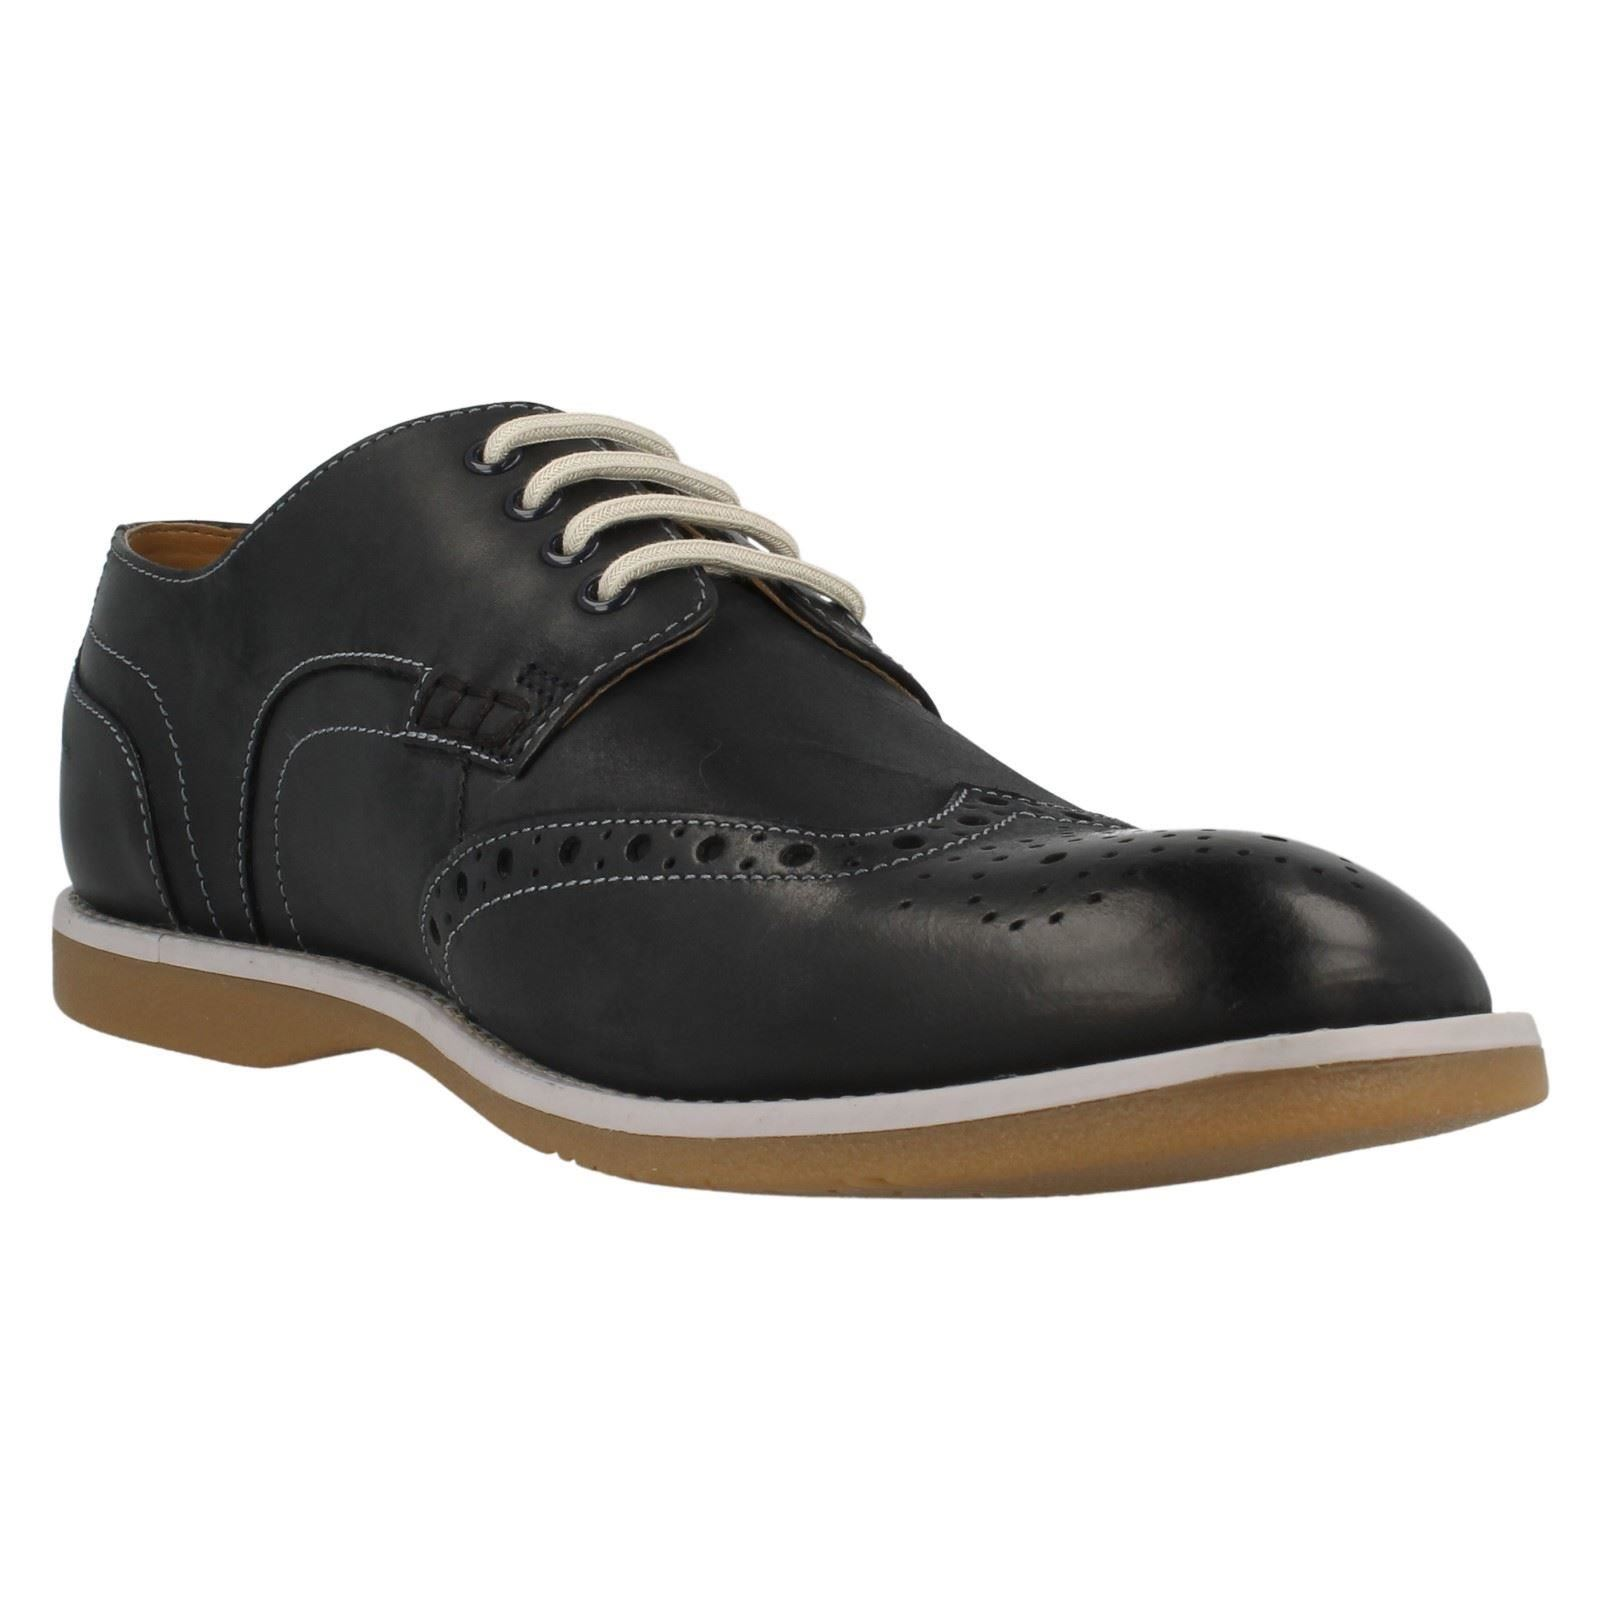 Clarks Brogue Mens Shoes Sale